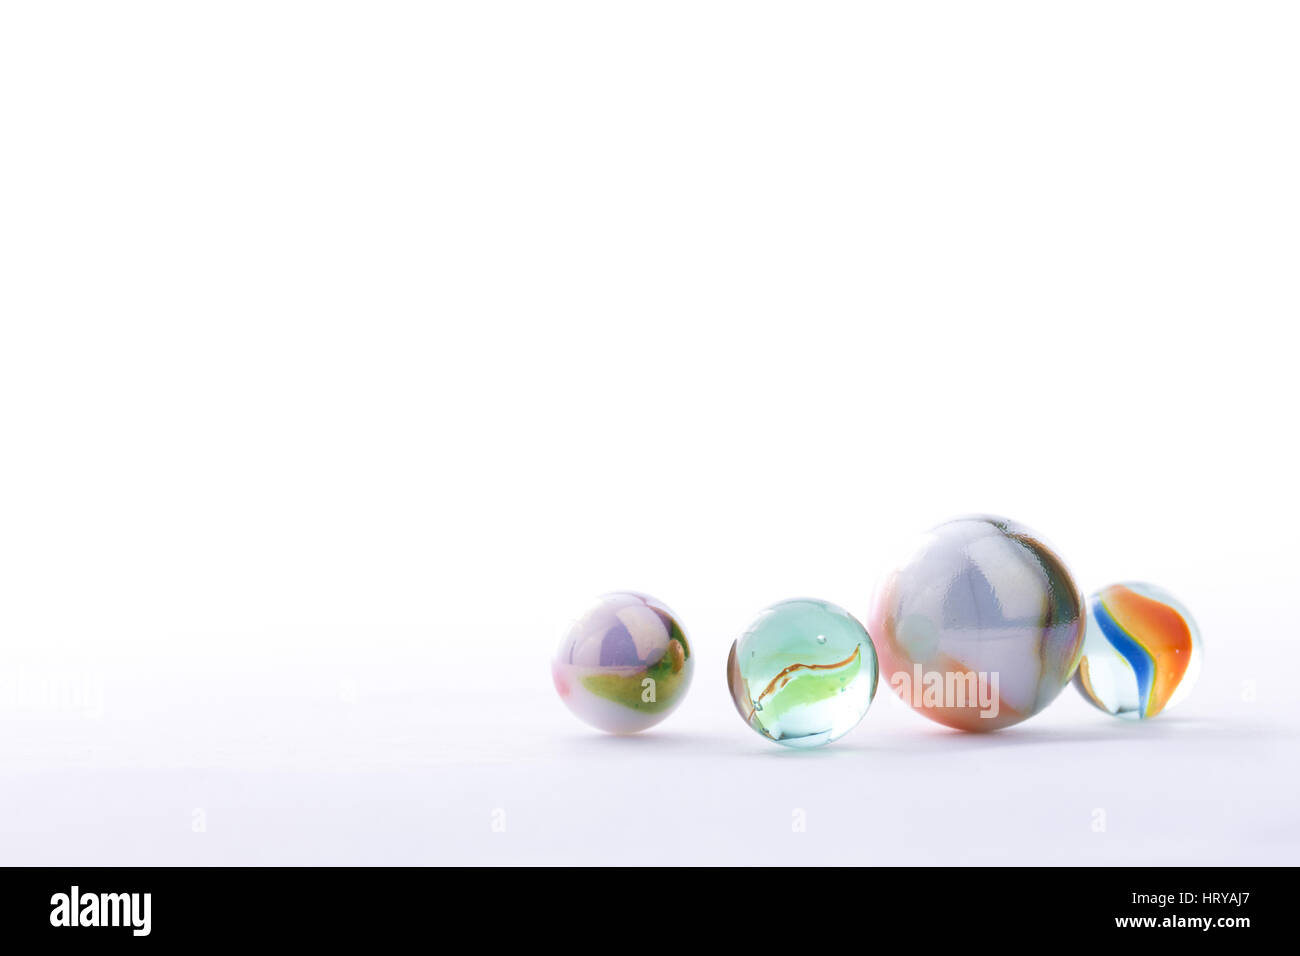 Close up photo of marbles, isolated in front of a white background - Stock Image